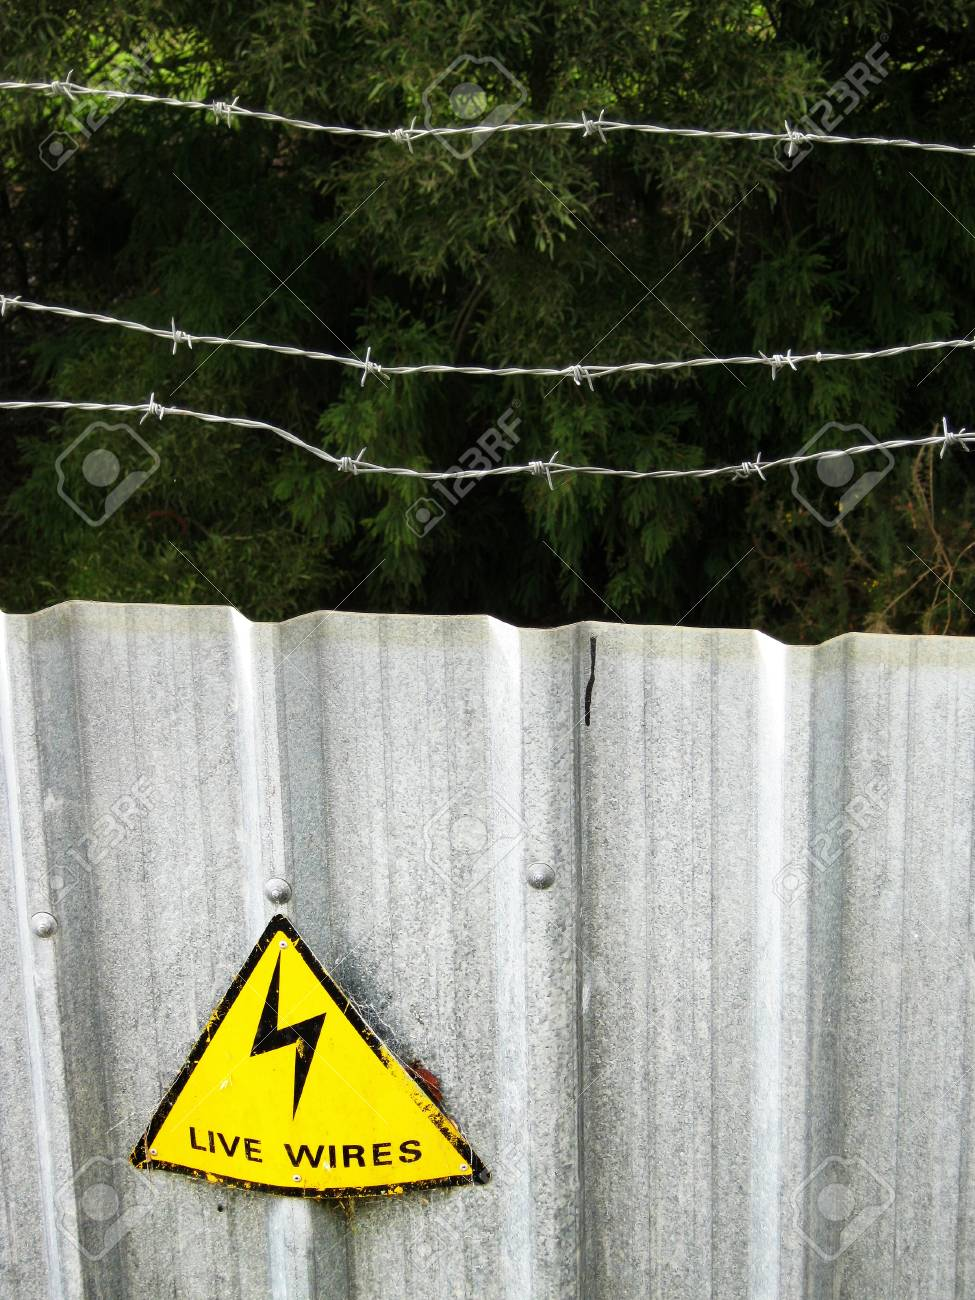 Sign on barbed wire security fence Stock Photo - 13995302